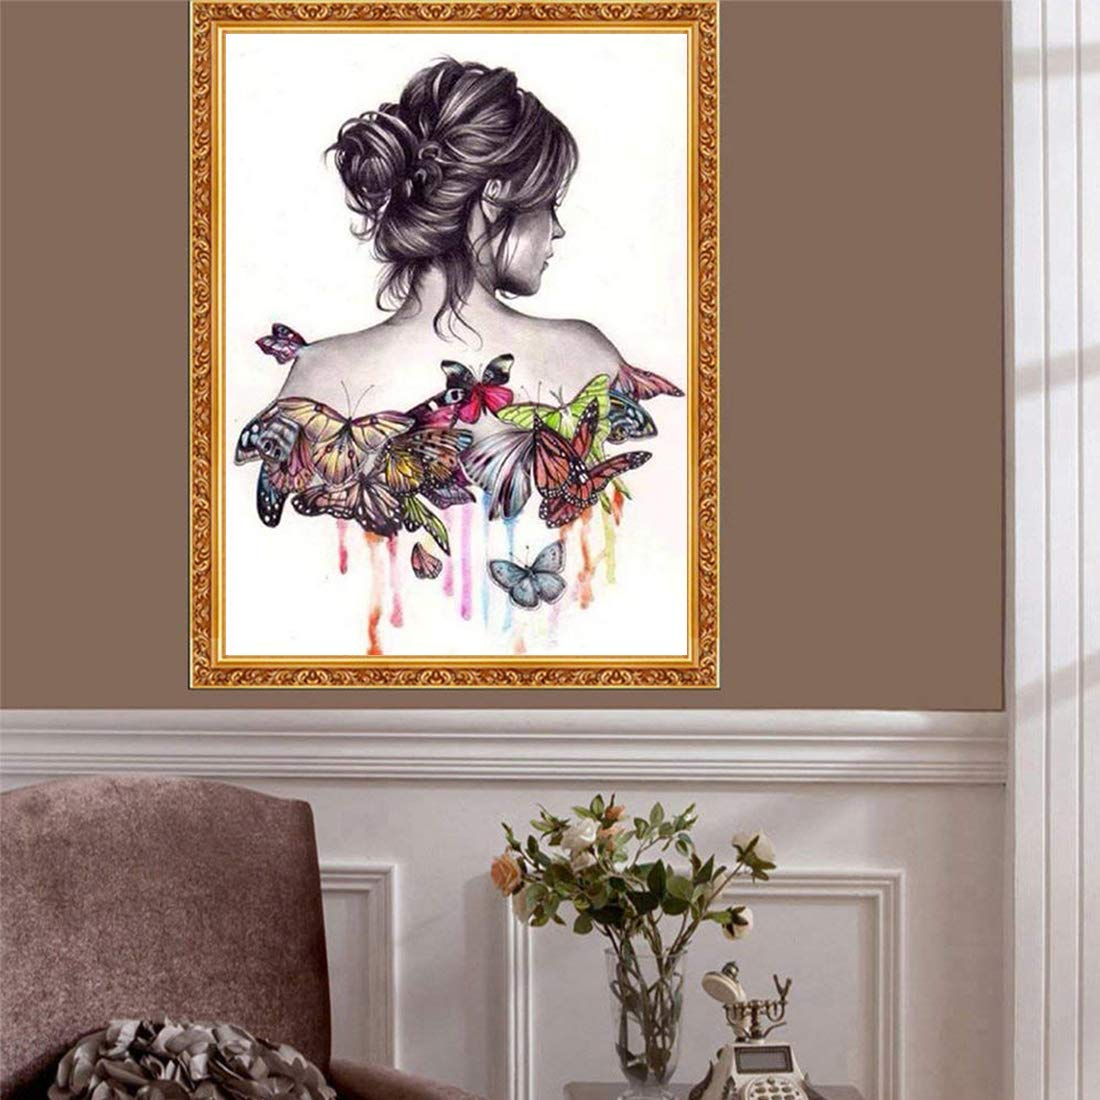 Woman 18X12inch//45X30CM Fipart 5D DIY Diamond Painting Cross Stitch Craft Kit Wall Stickers for Living Room Decoration